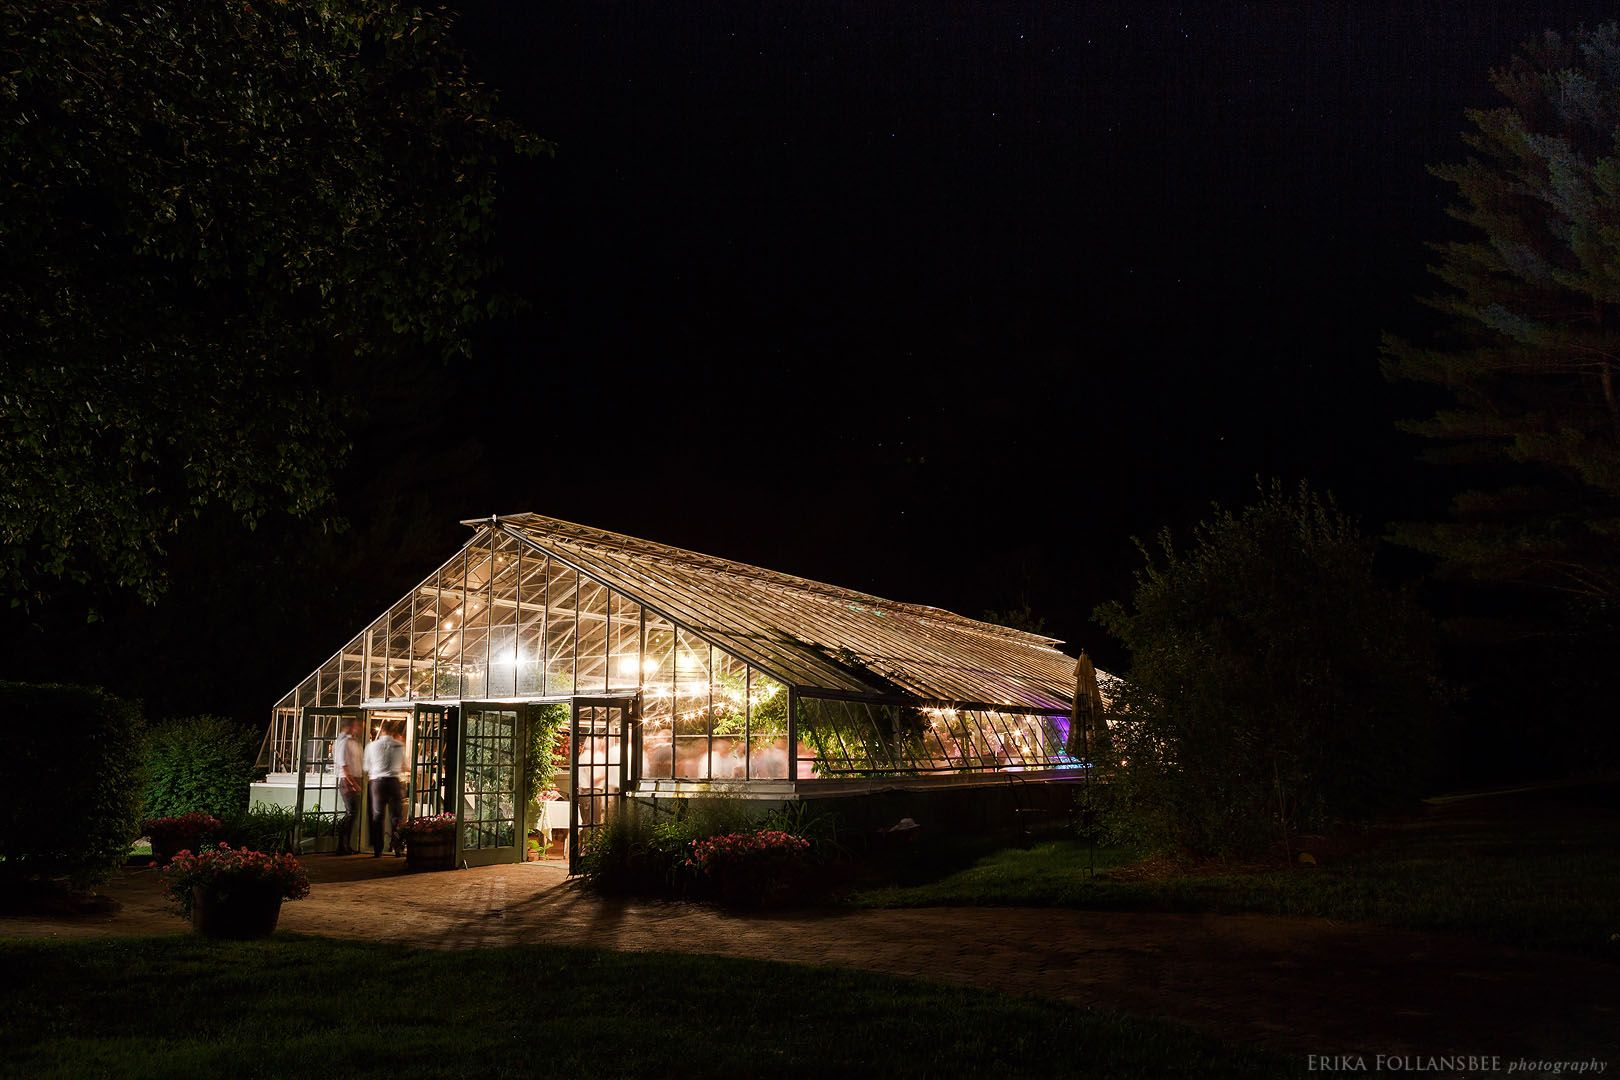 The Greenhouse At The Italian Farmhouse In Plymouth Nh Lit Up With Wedding Festivities At Night In 2020 Italian Farmhouse Greenhouse Farmhouse Greenhouses